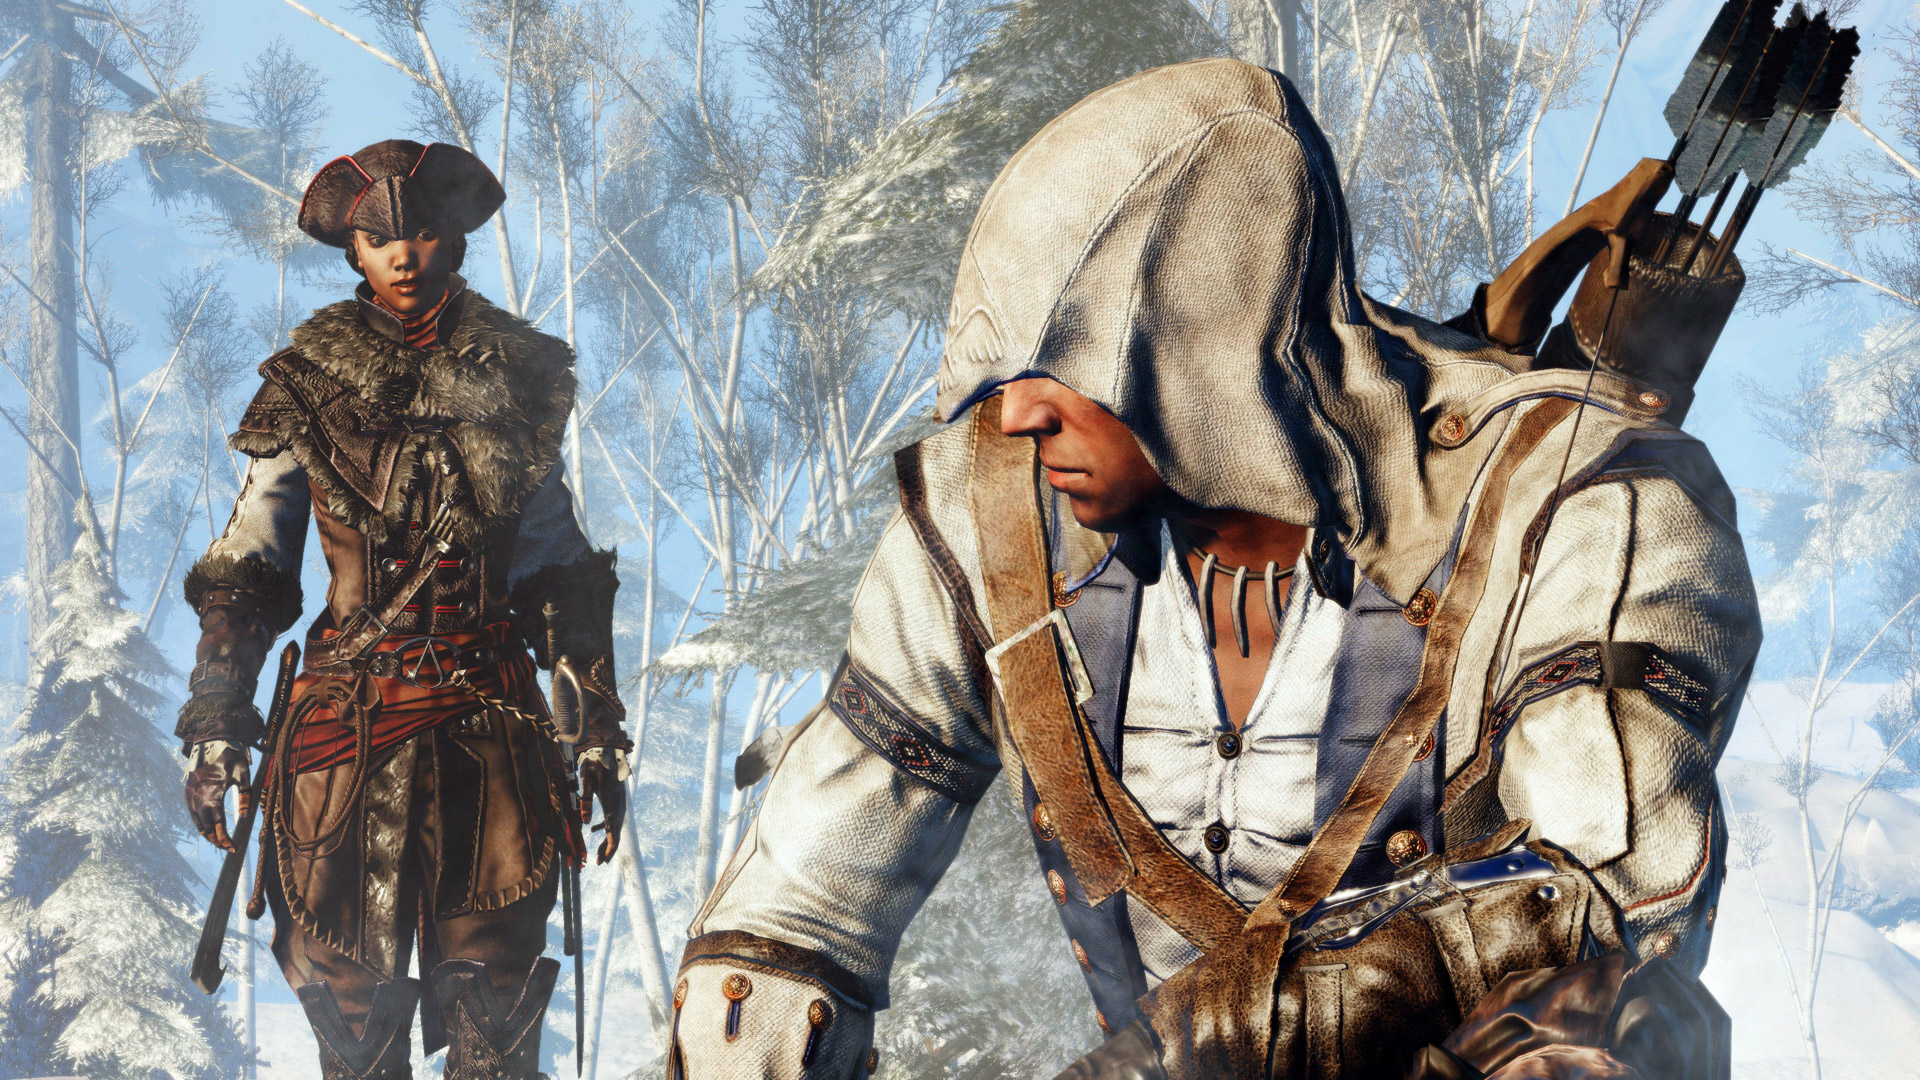 Assassin's Creed III: Liberation Wallpaper in 1920x1080